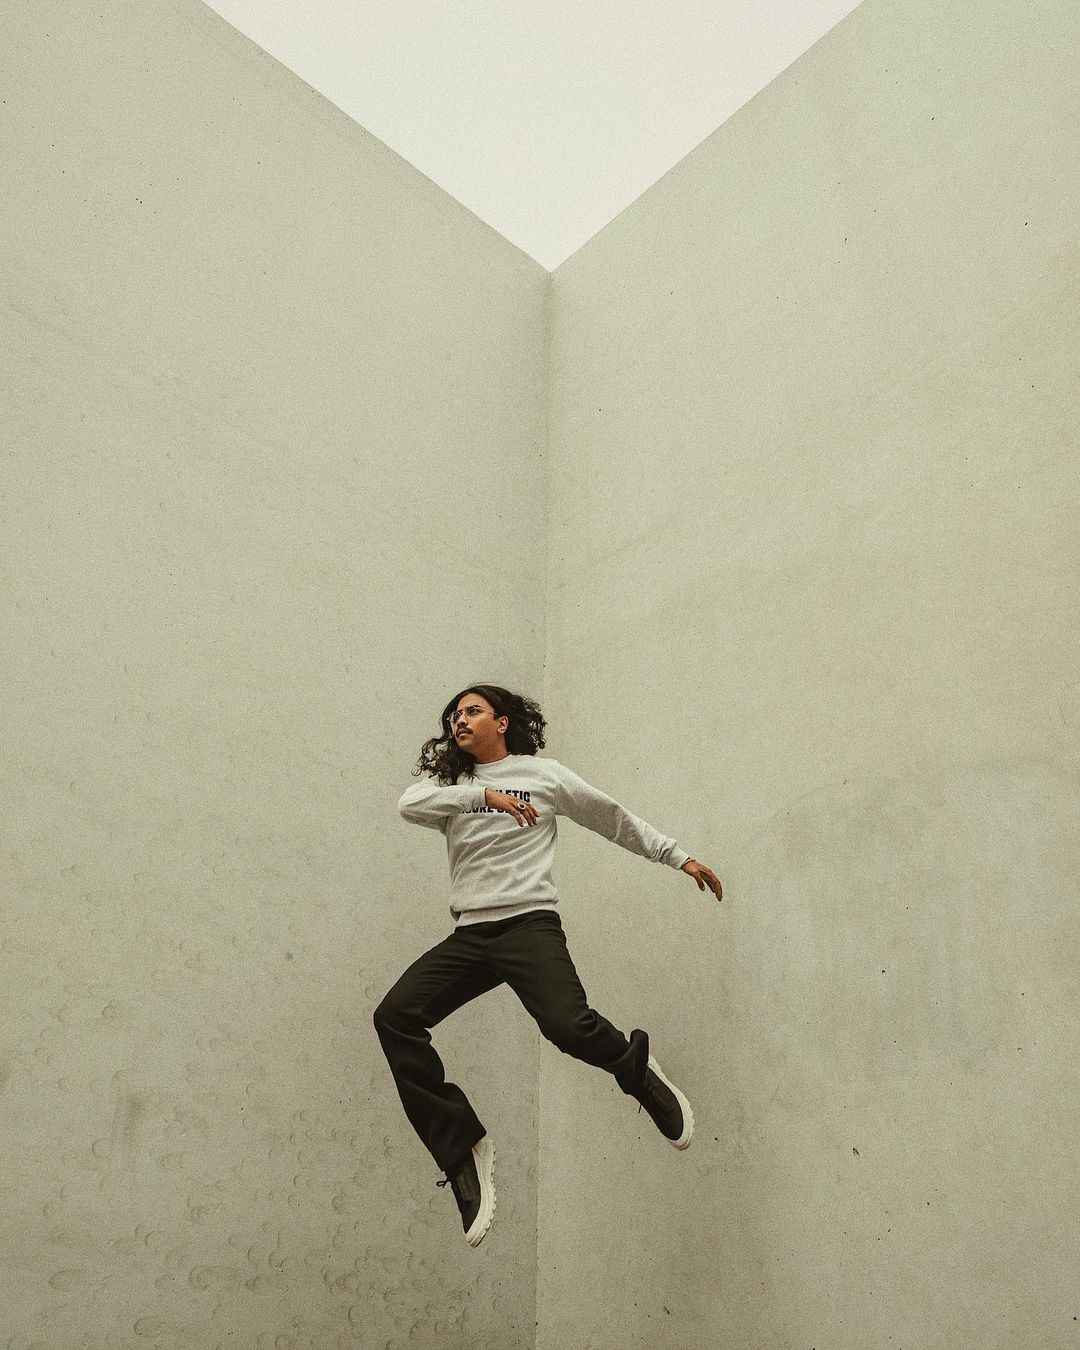 Denny Balmaceda jumping high in the air in the corner of a concrete wallsection